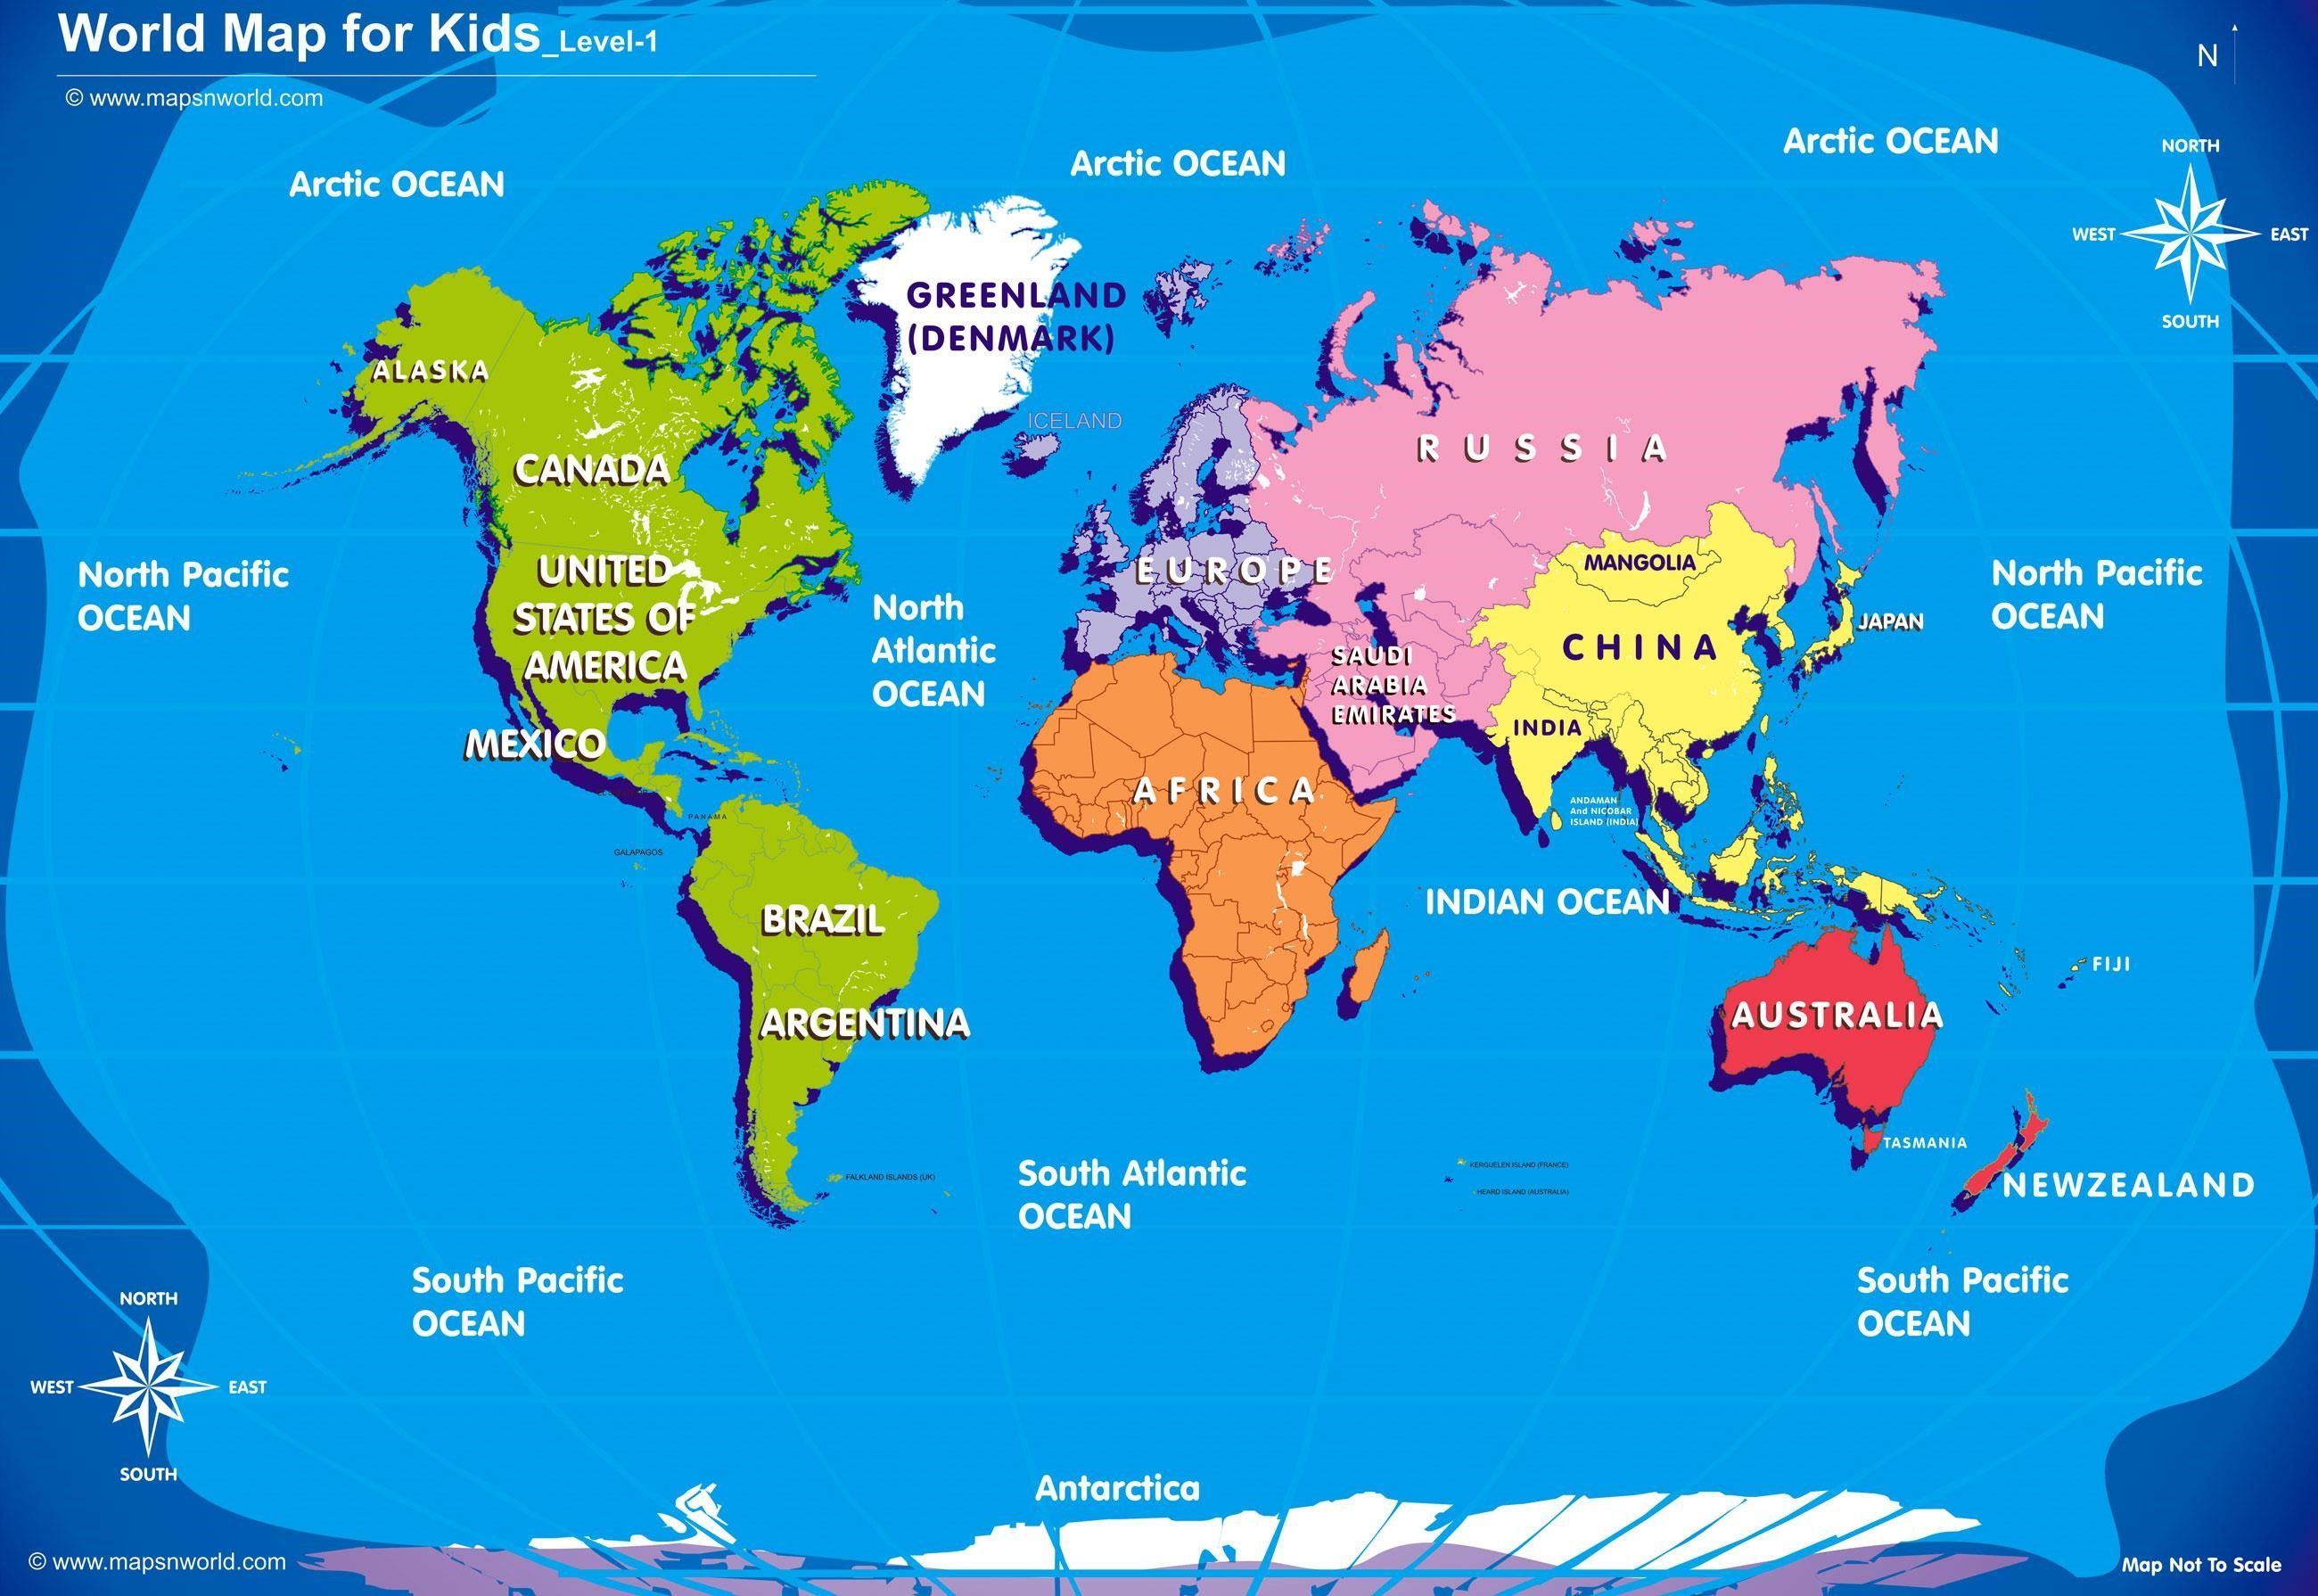 Give Kids The World Map.Pin By Nicole Wilkins On Our World Pinterest Maps For Kids Map